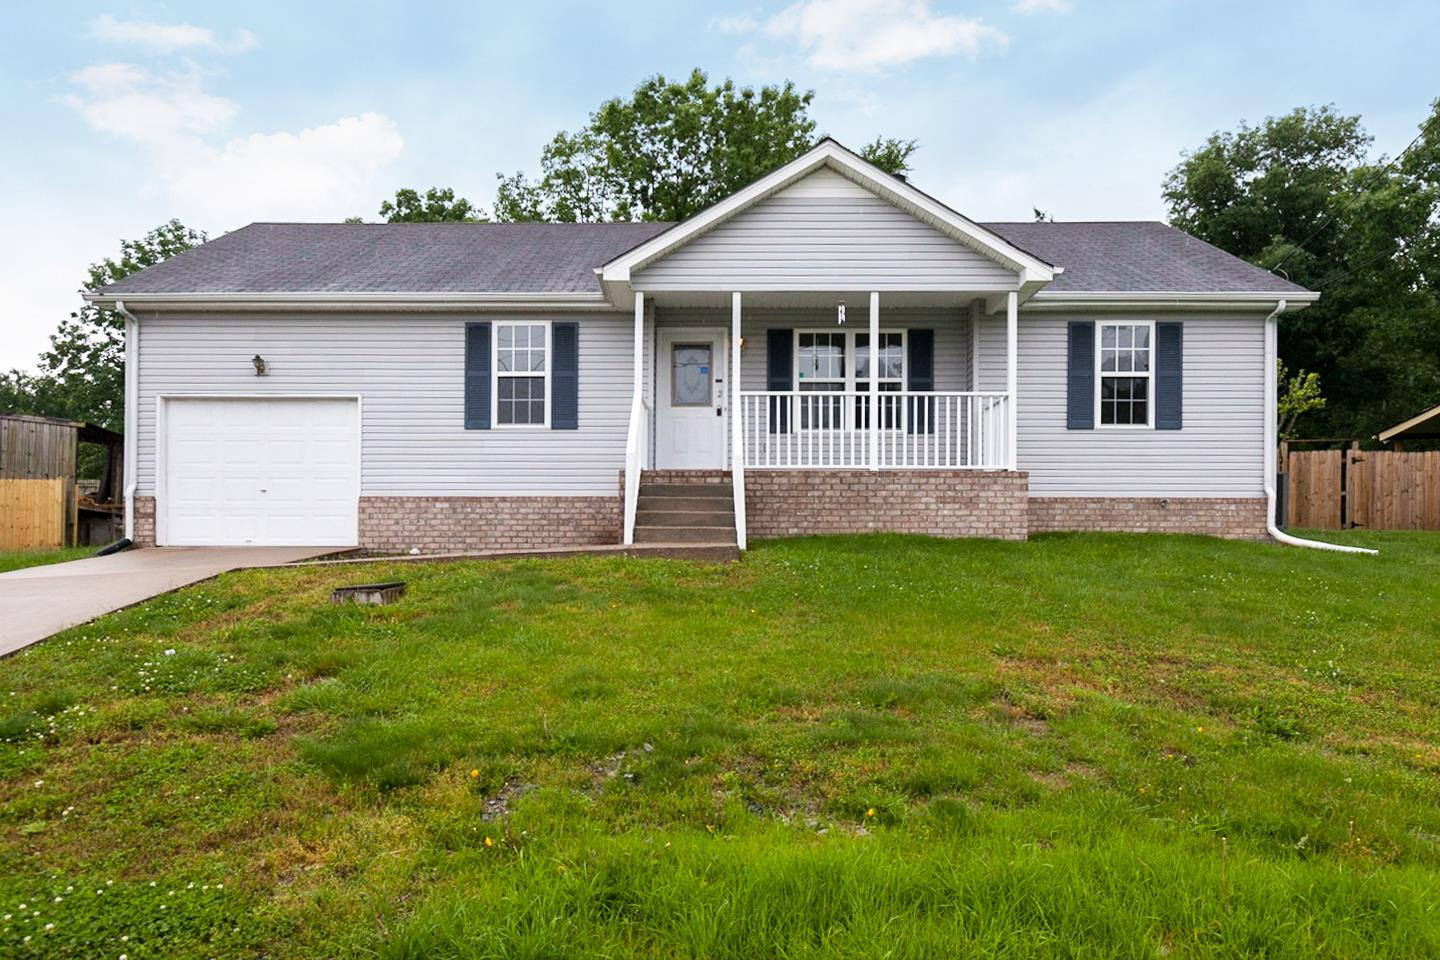 1909 Peaceful Brook Ct, Nashville-Antioch in Davidson County County, TN 37013 Home for Sale